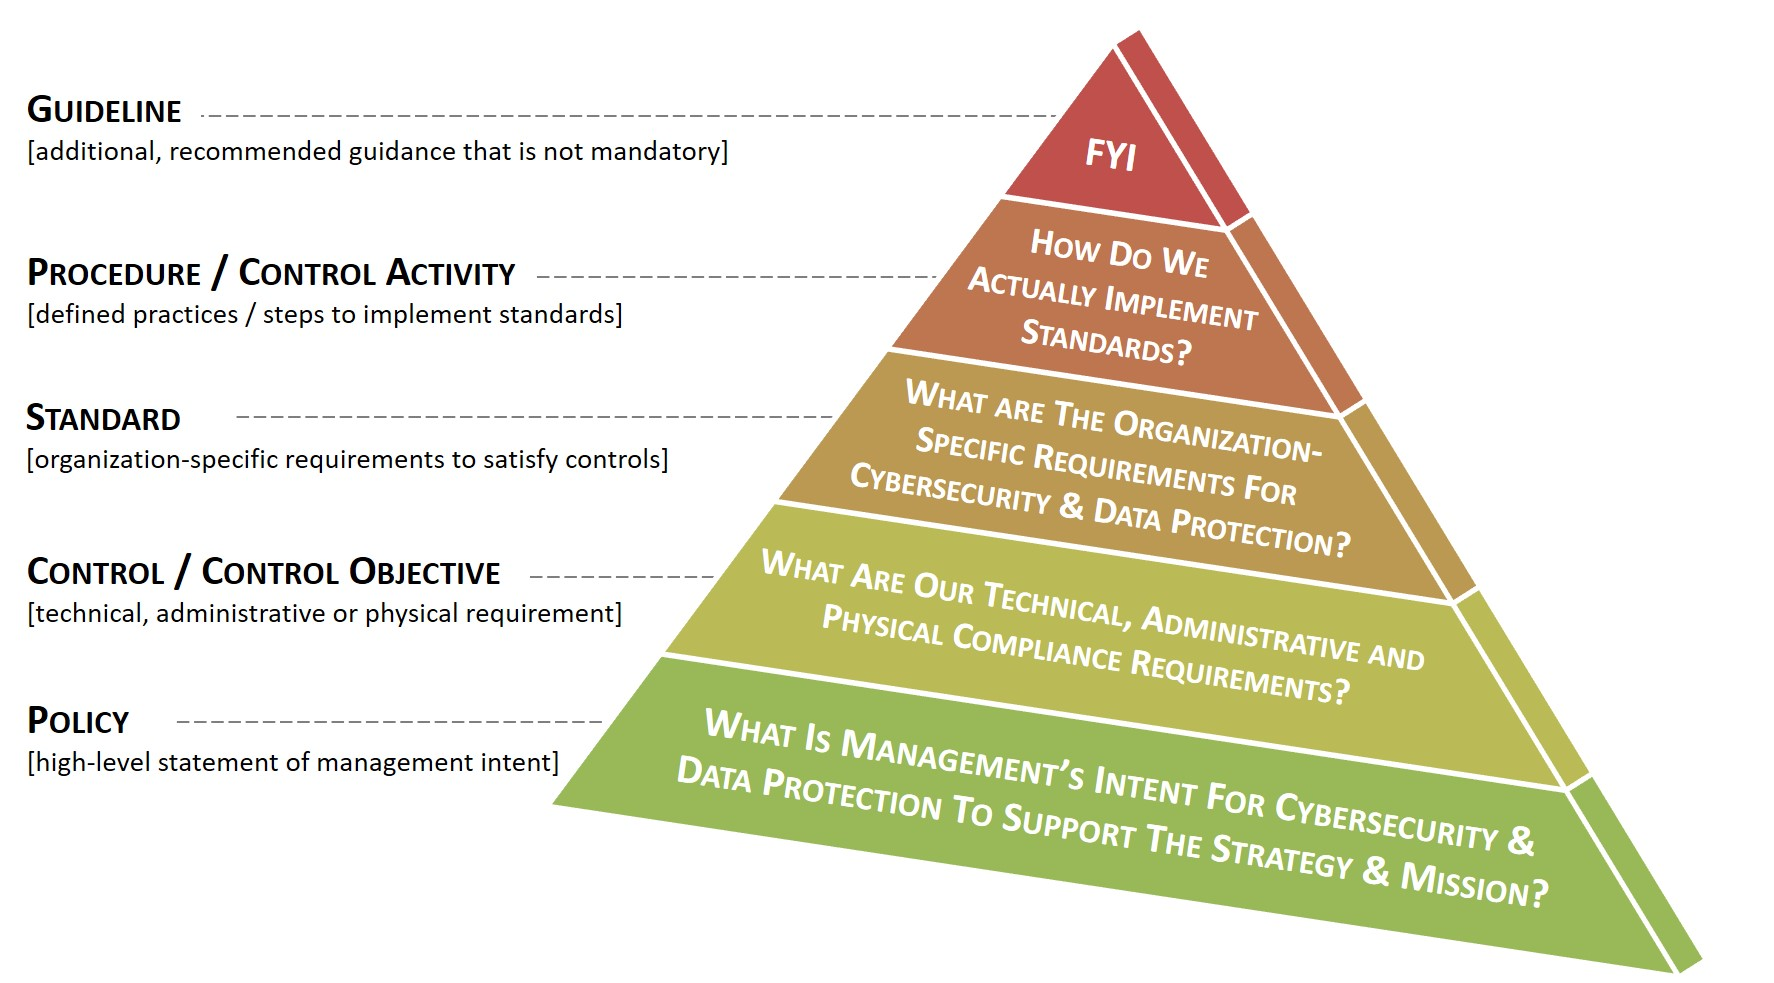 2021-policy-pyramid-policies-standards-controls-procedures-guidelines.jpg